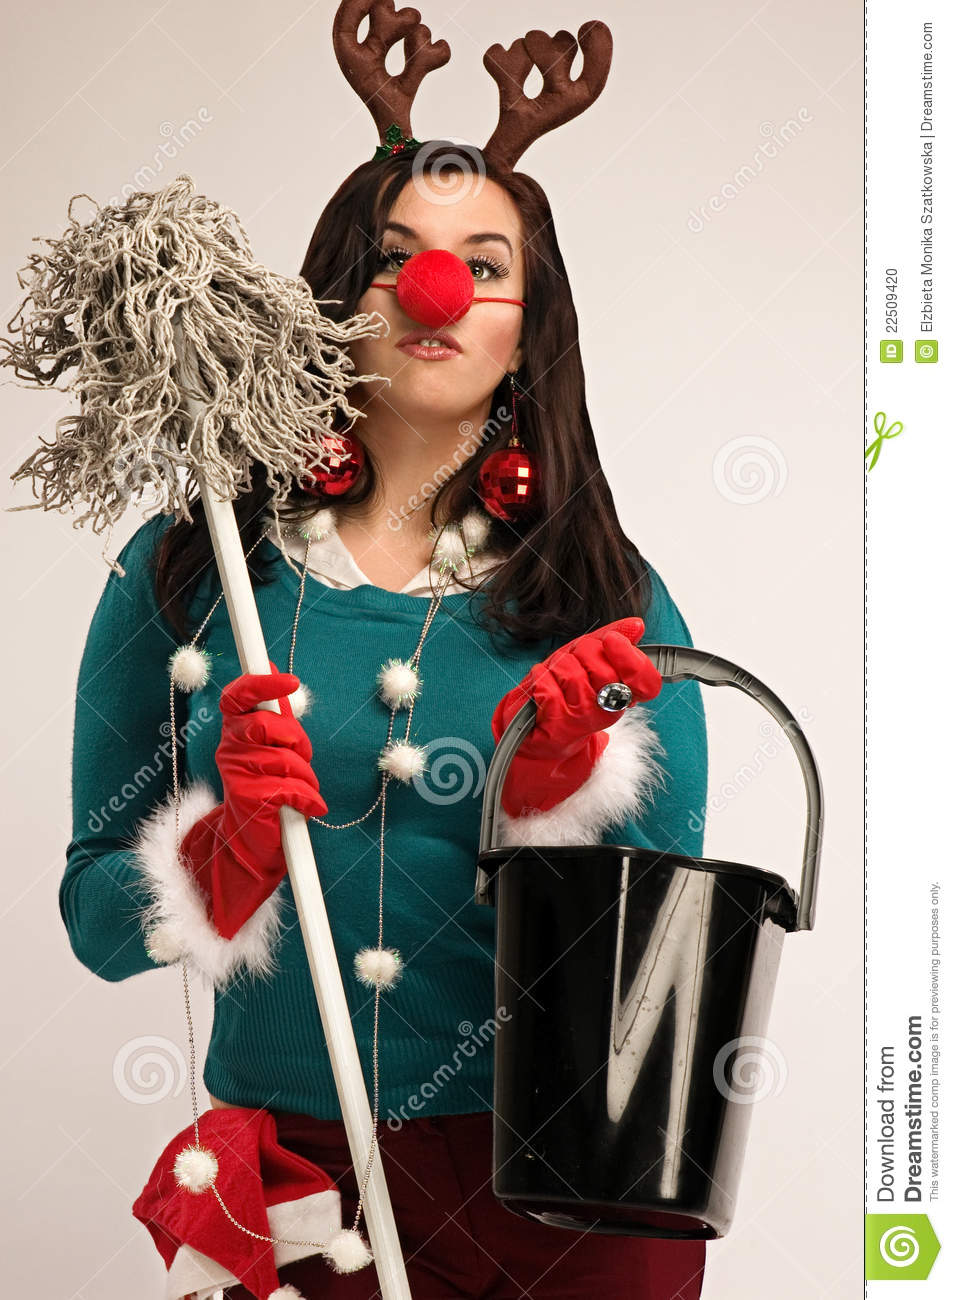 Cleaning After Christmas Stock Photo Image 22509420